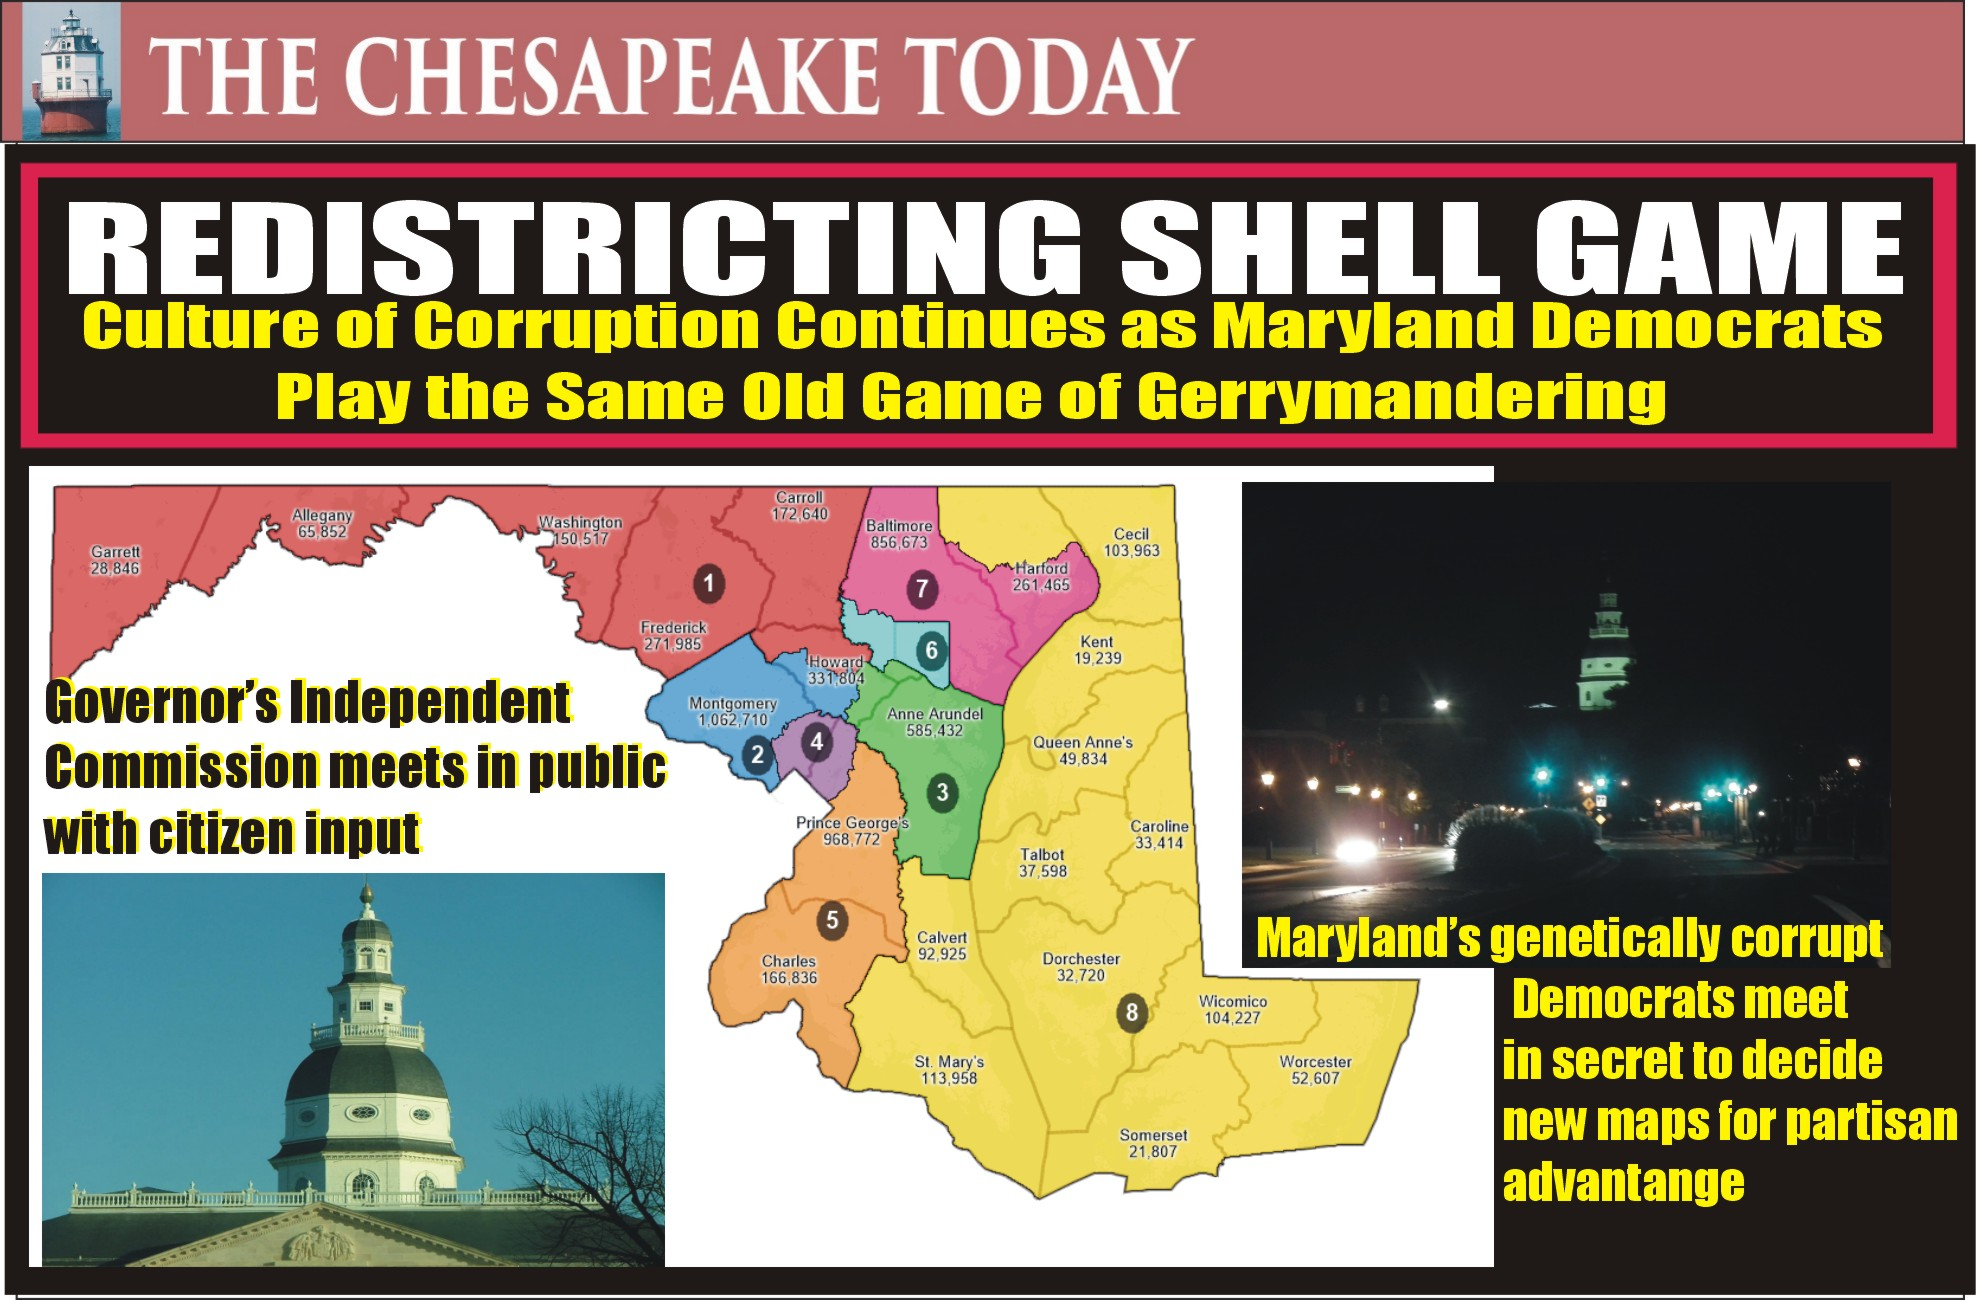 MARYLAND REDISTRICTING: Democrats are a no-show of their plans on gerrymandering of legislative and congressional districts for political gain